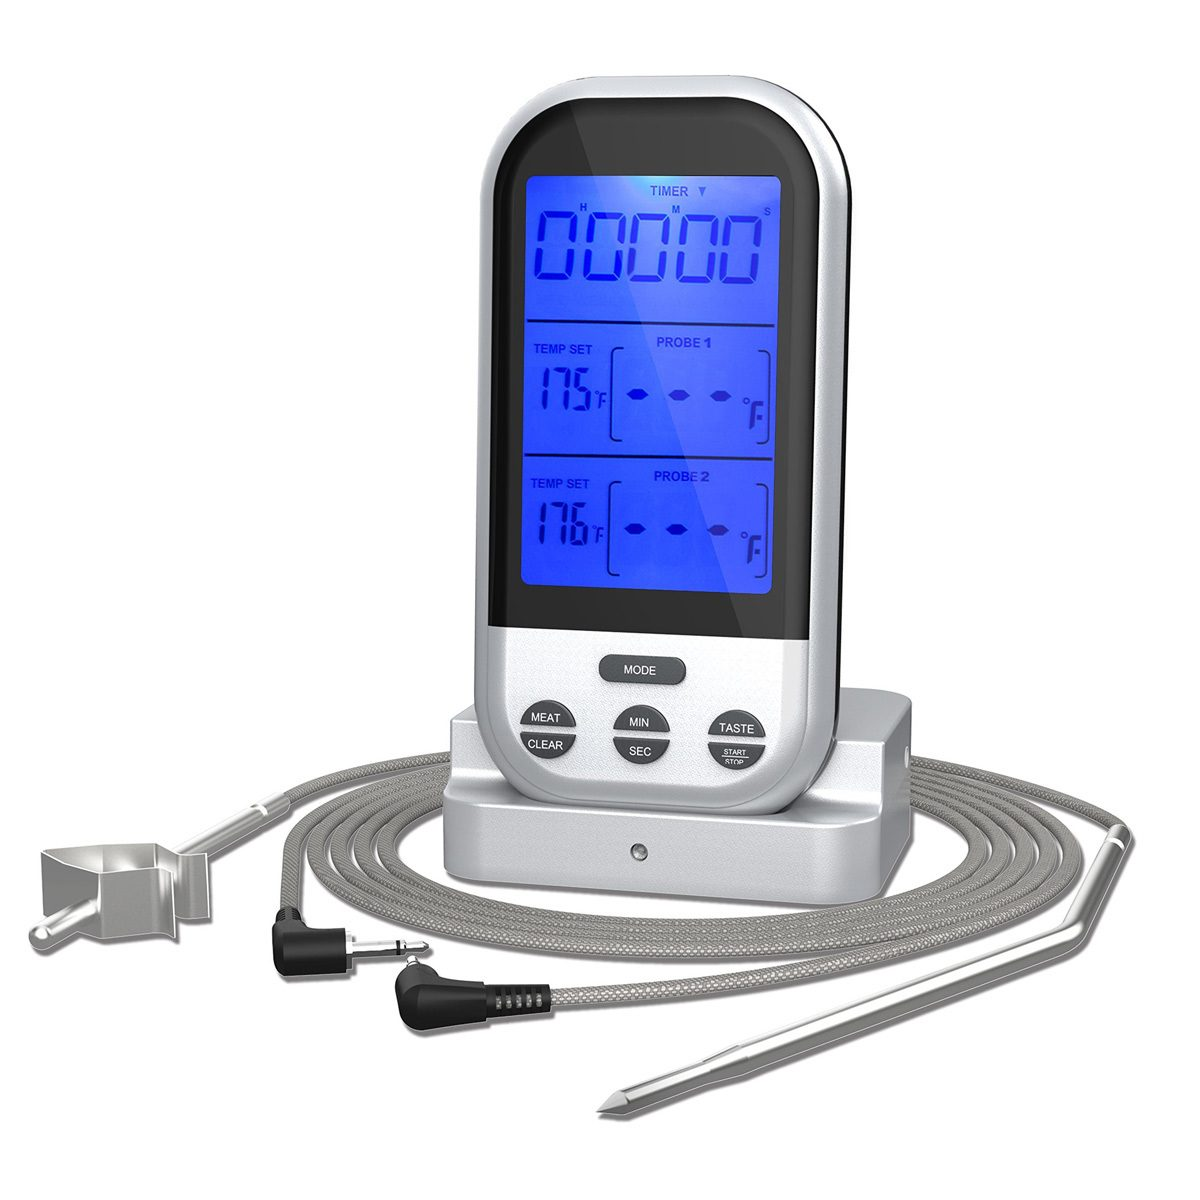 Grilling Digital thermometer